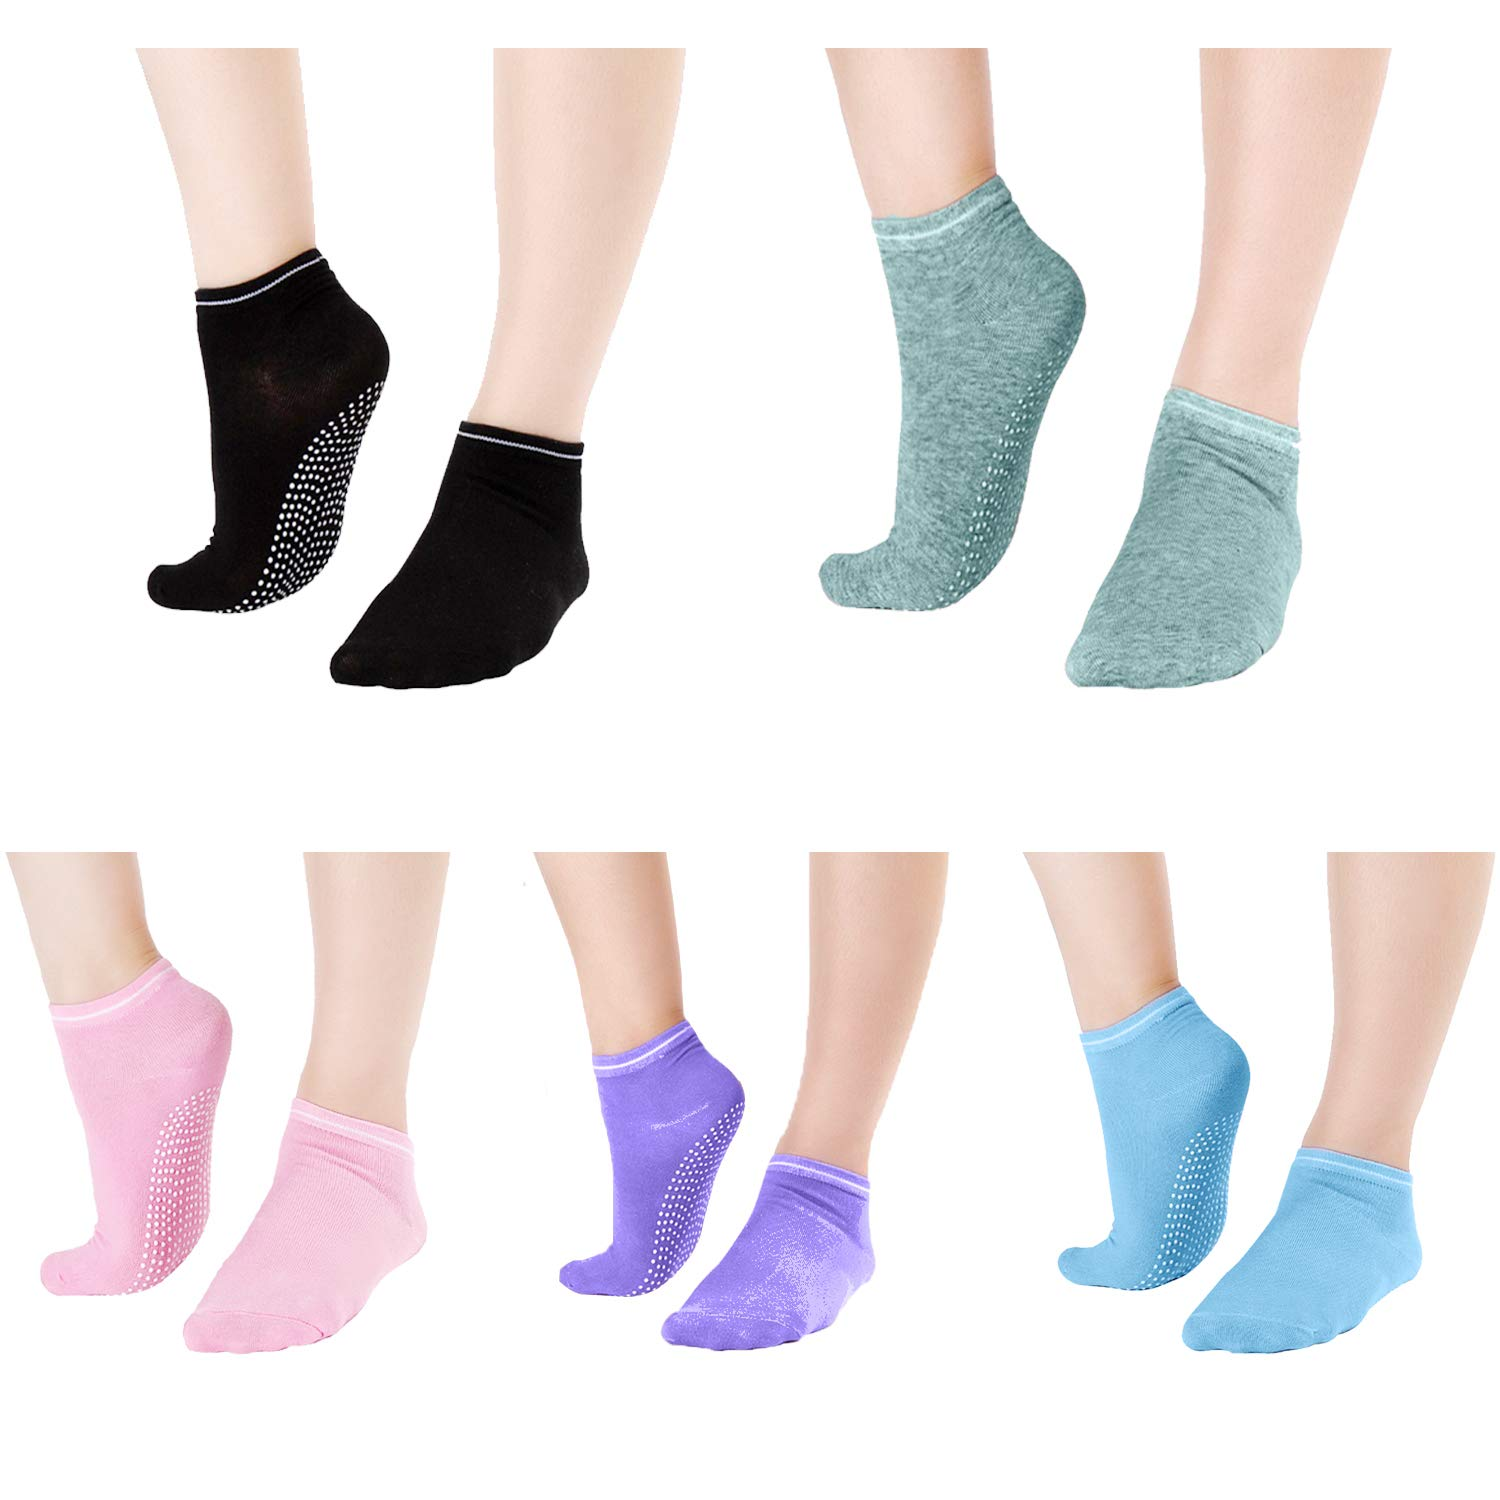 Non Skid Socks For Women - Elutong Grip Socks Barre 5 Pack Sticky Pilates Yoga Labor Exercise Sox by Elutong